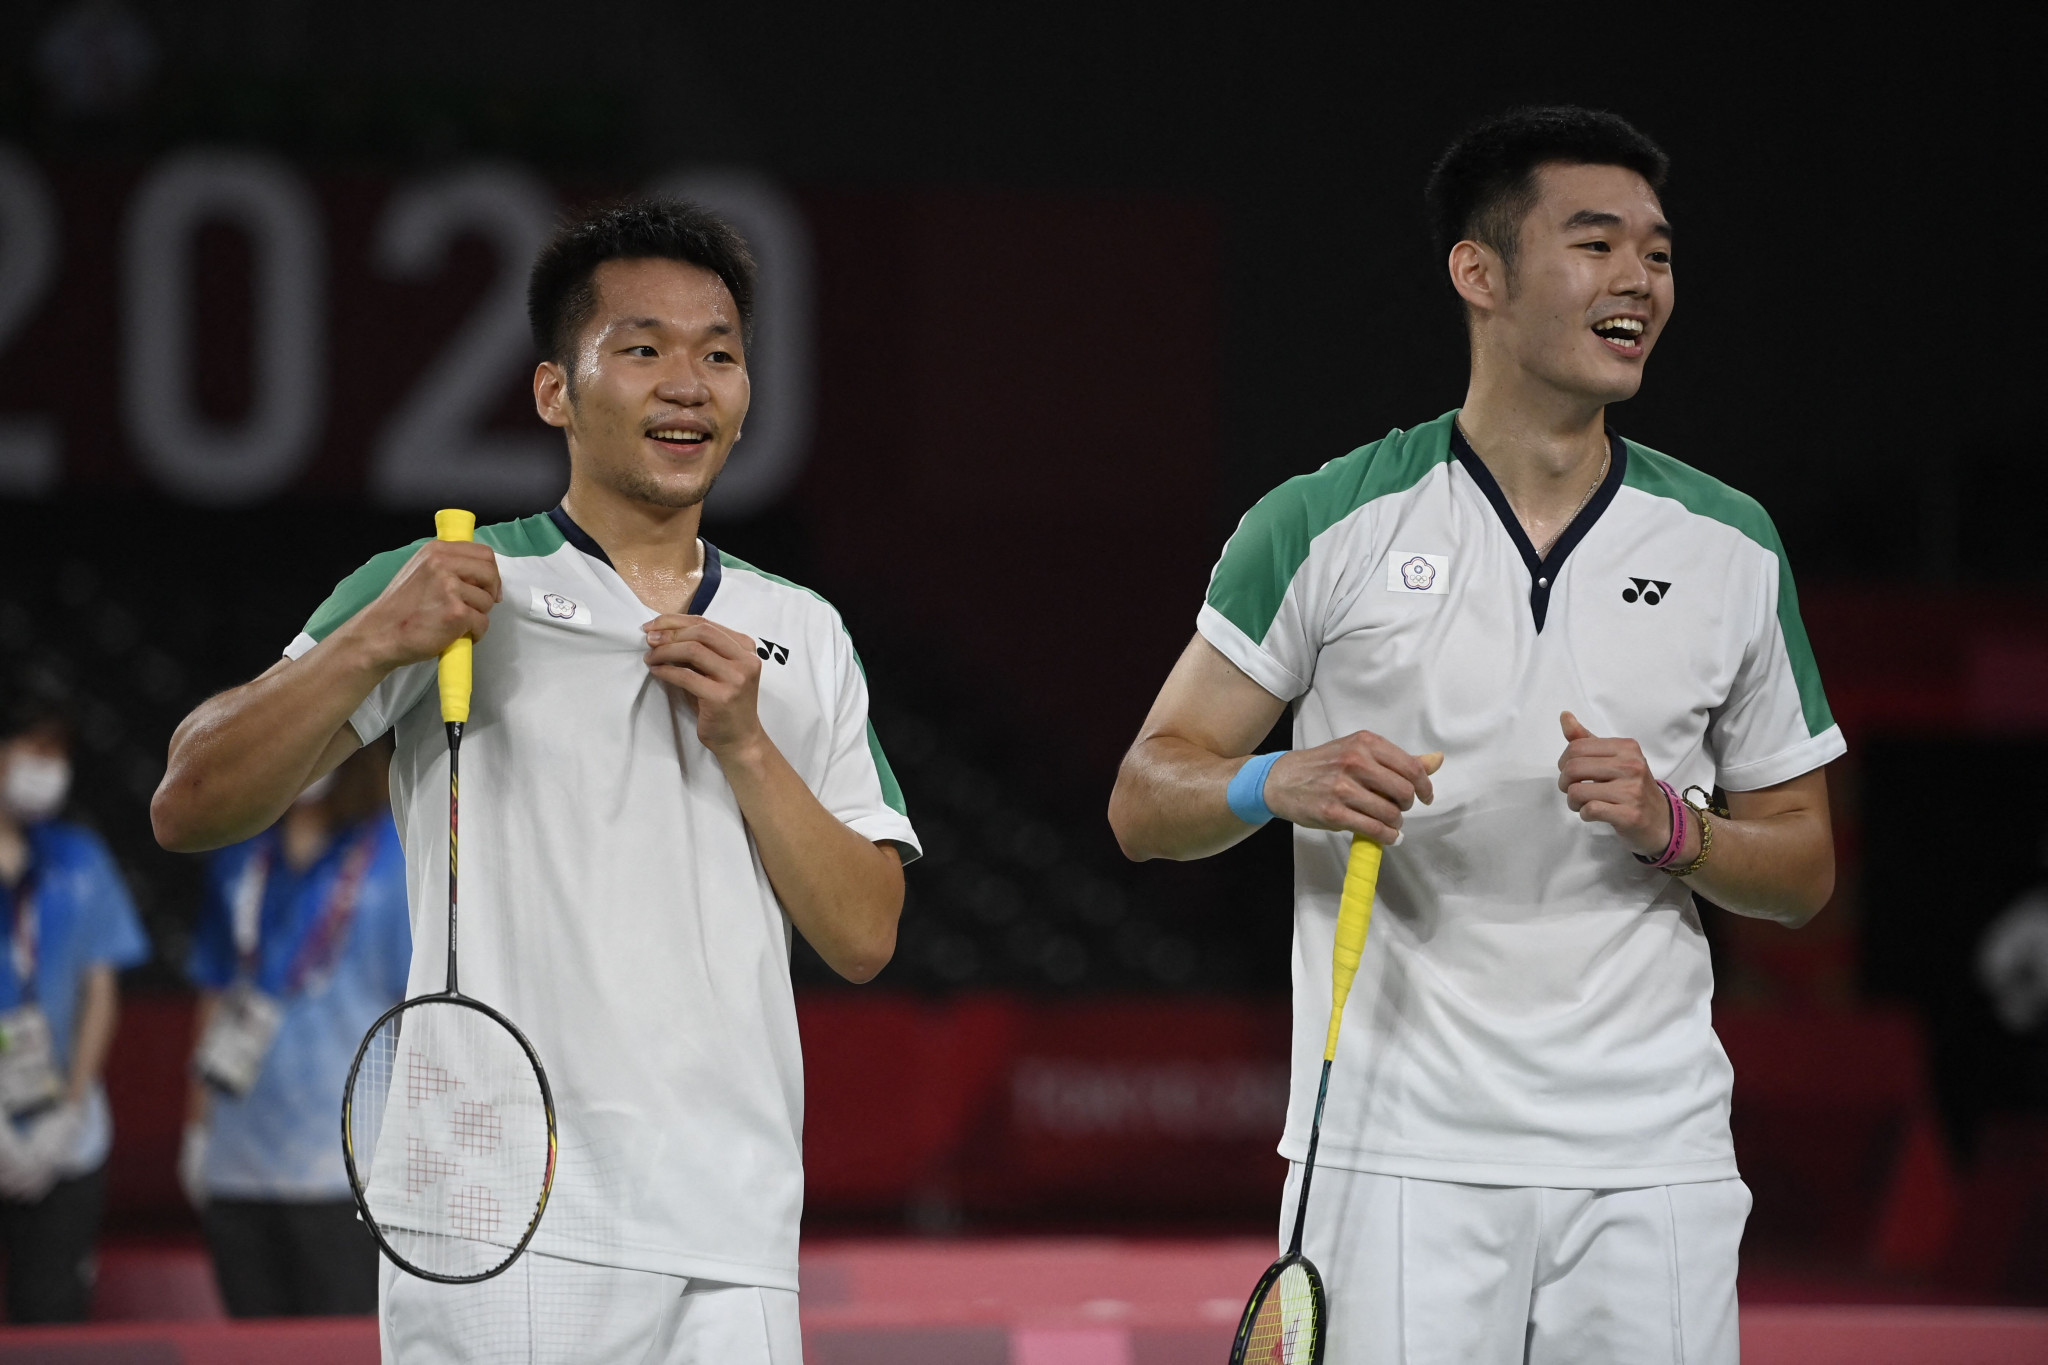 Lee and Wang earn first badminton gold for Chinese Taipei with doubles title